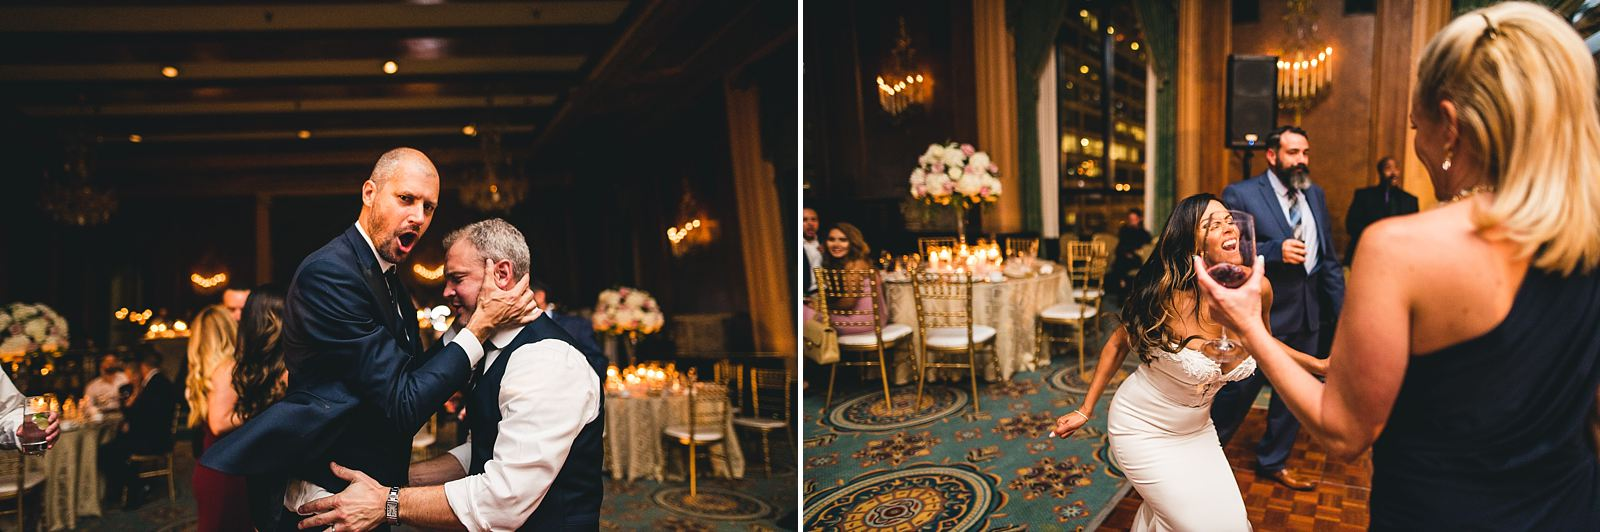 59 chicago reception photography fun - Intercontinental Chicago Hotel Wedding // Lili + Danny